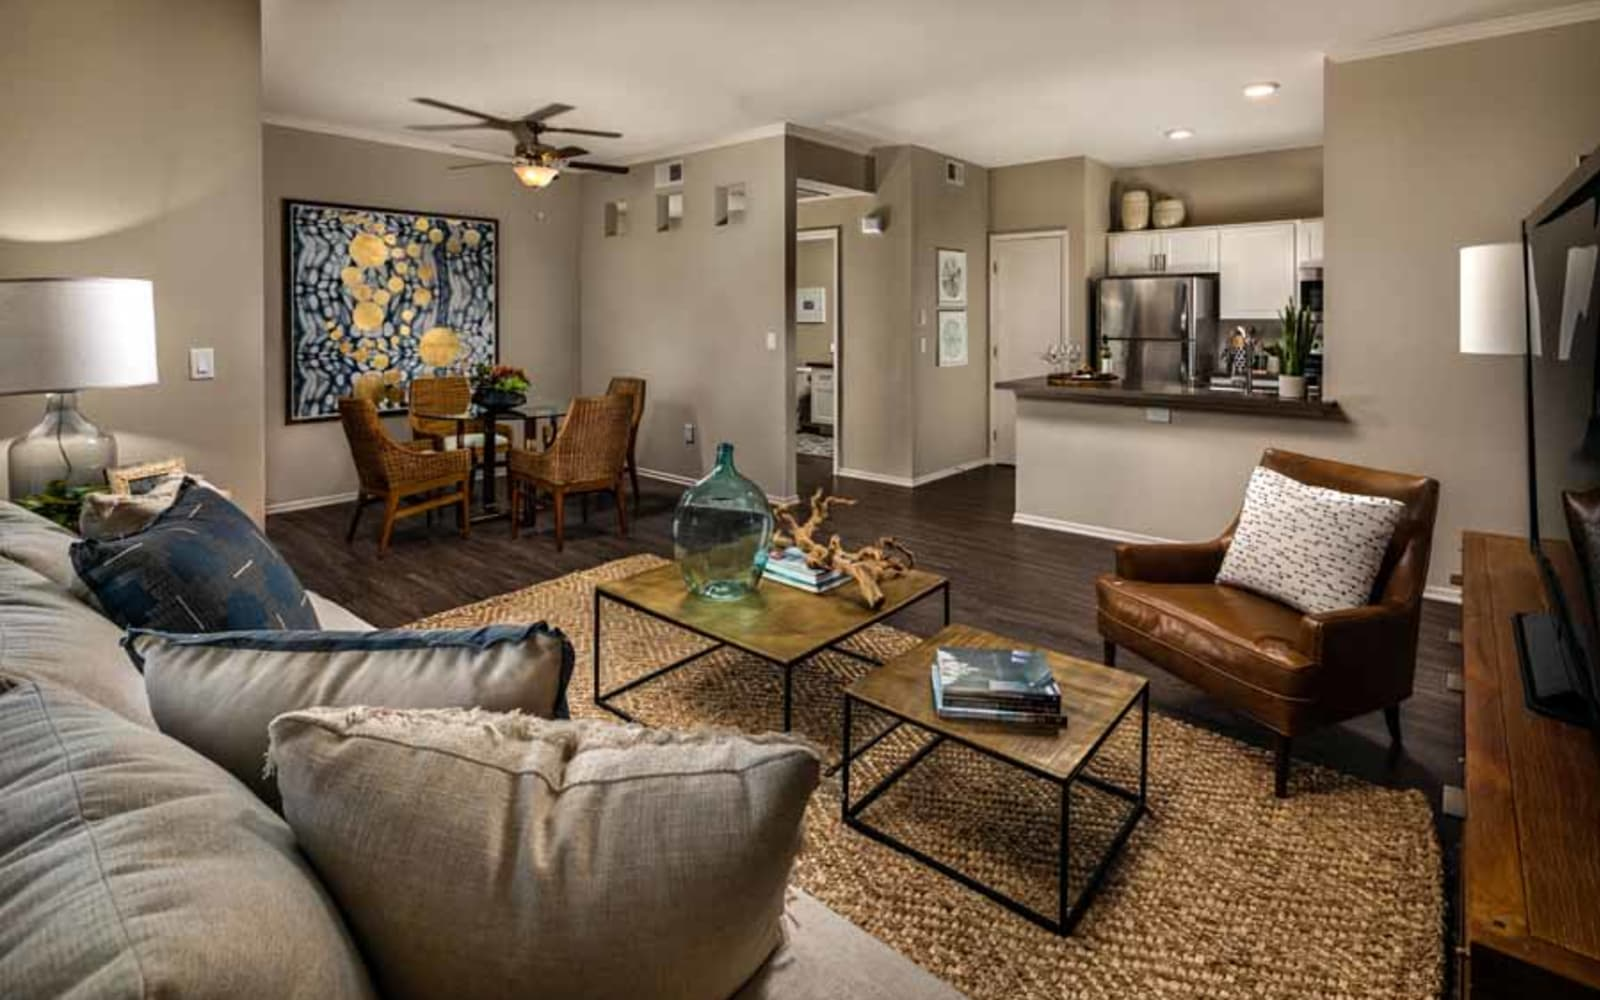 An apartment kitchen, living room and dining room at Castlerock at Sycamore Highlands in Riverside, California